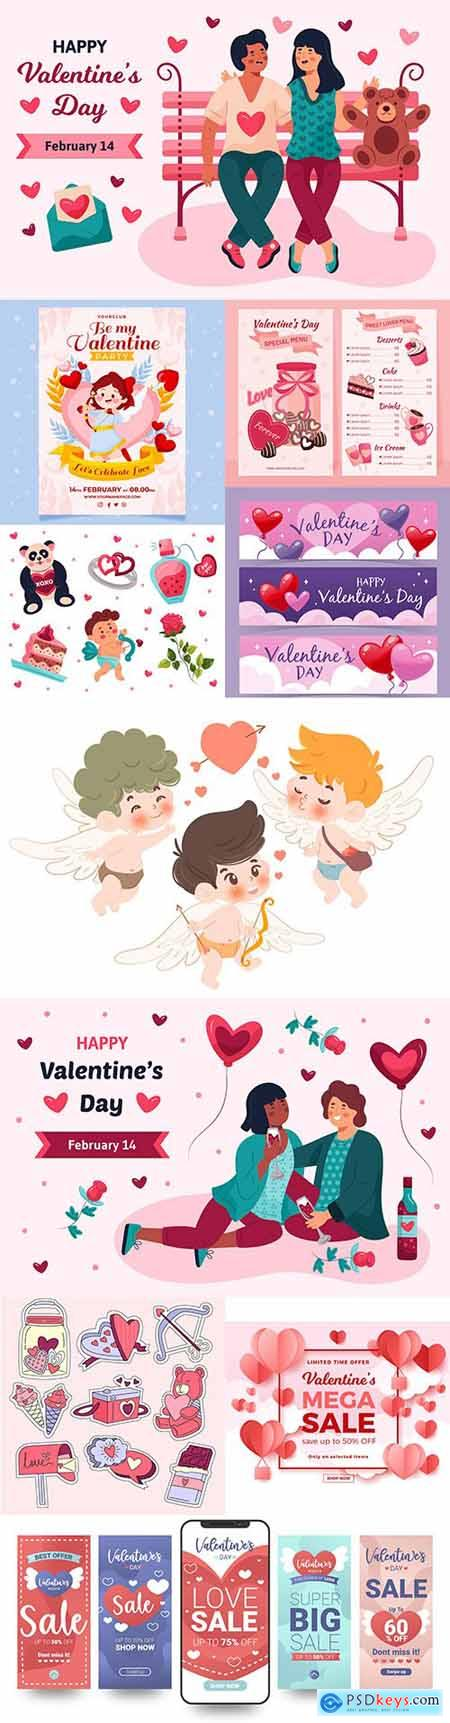 Valentines Day sale and collection element design